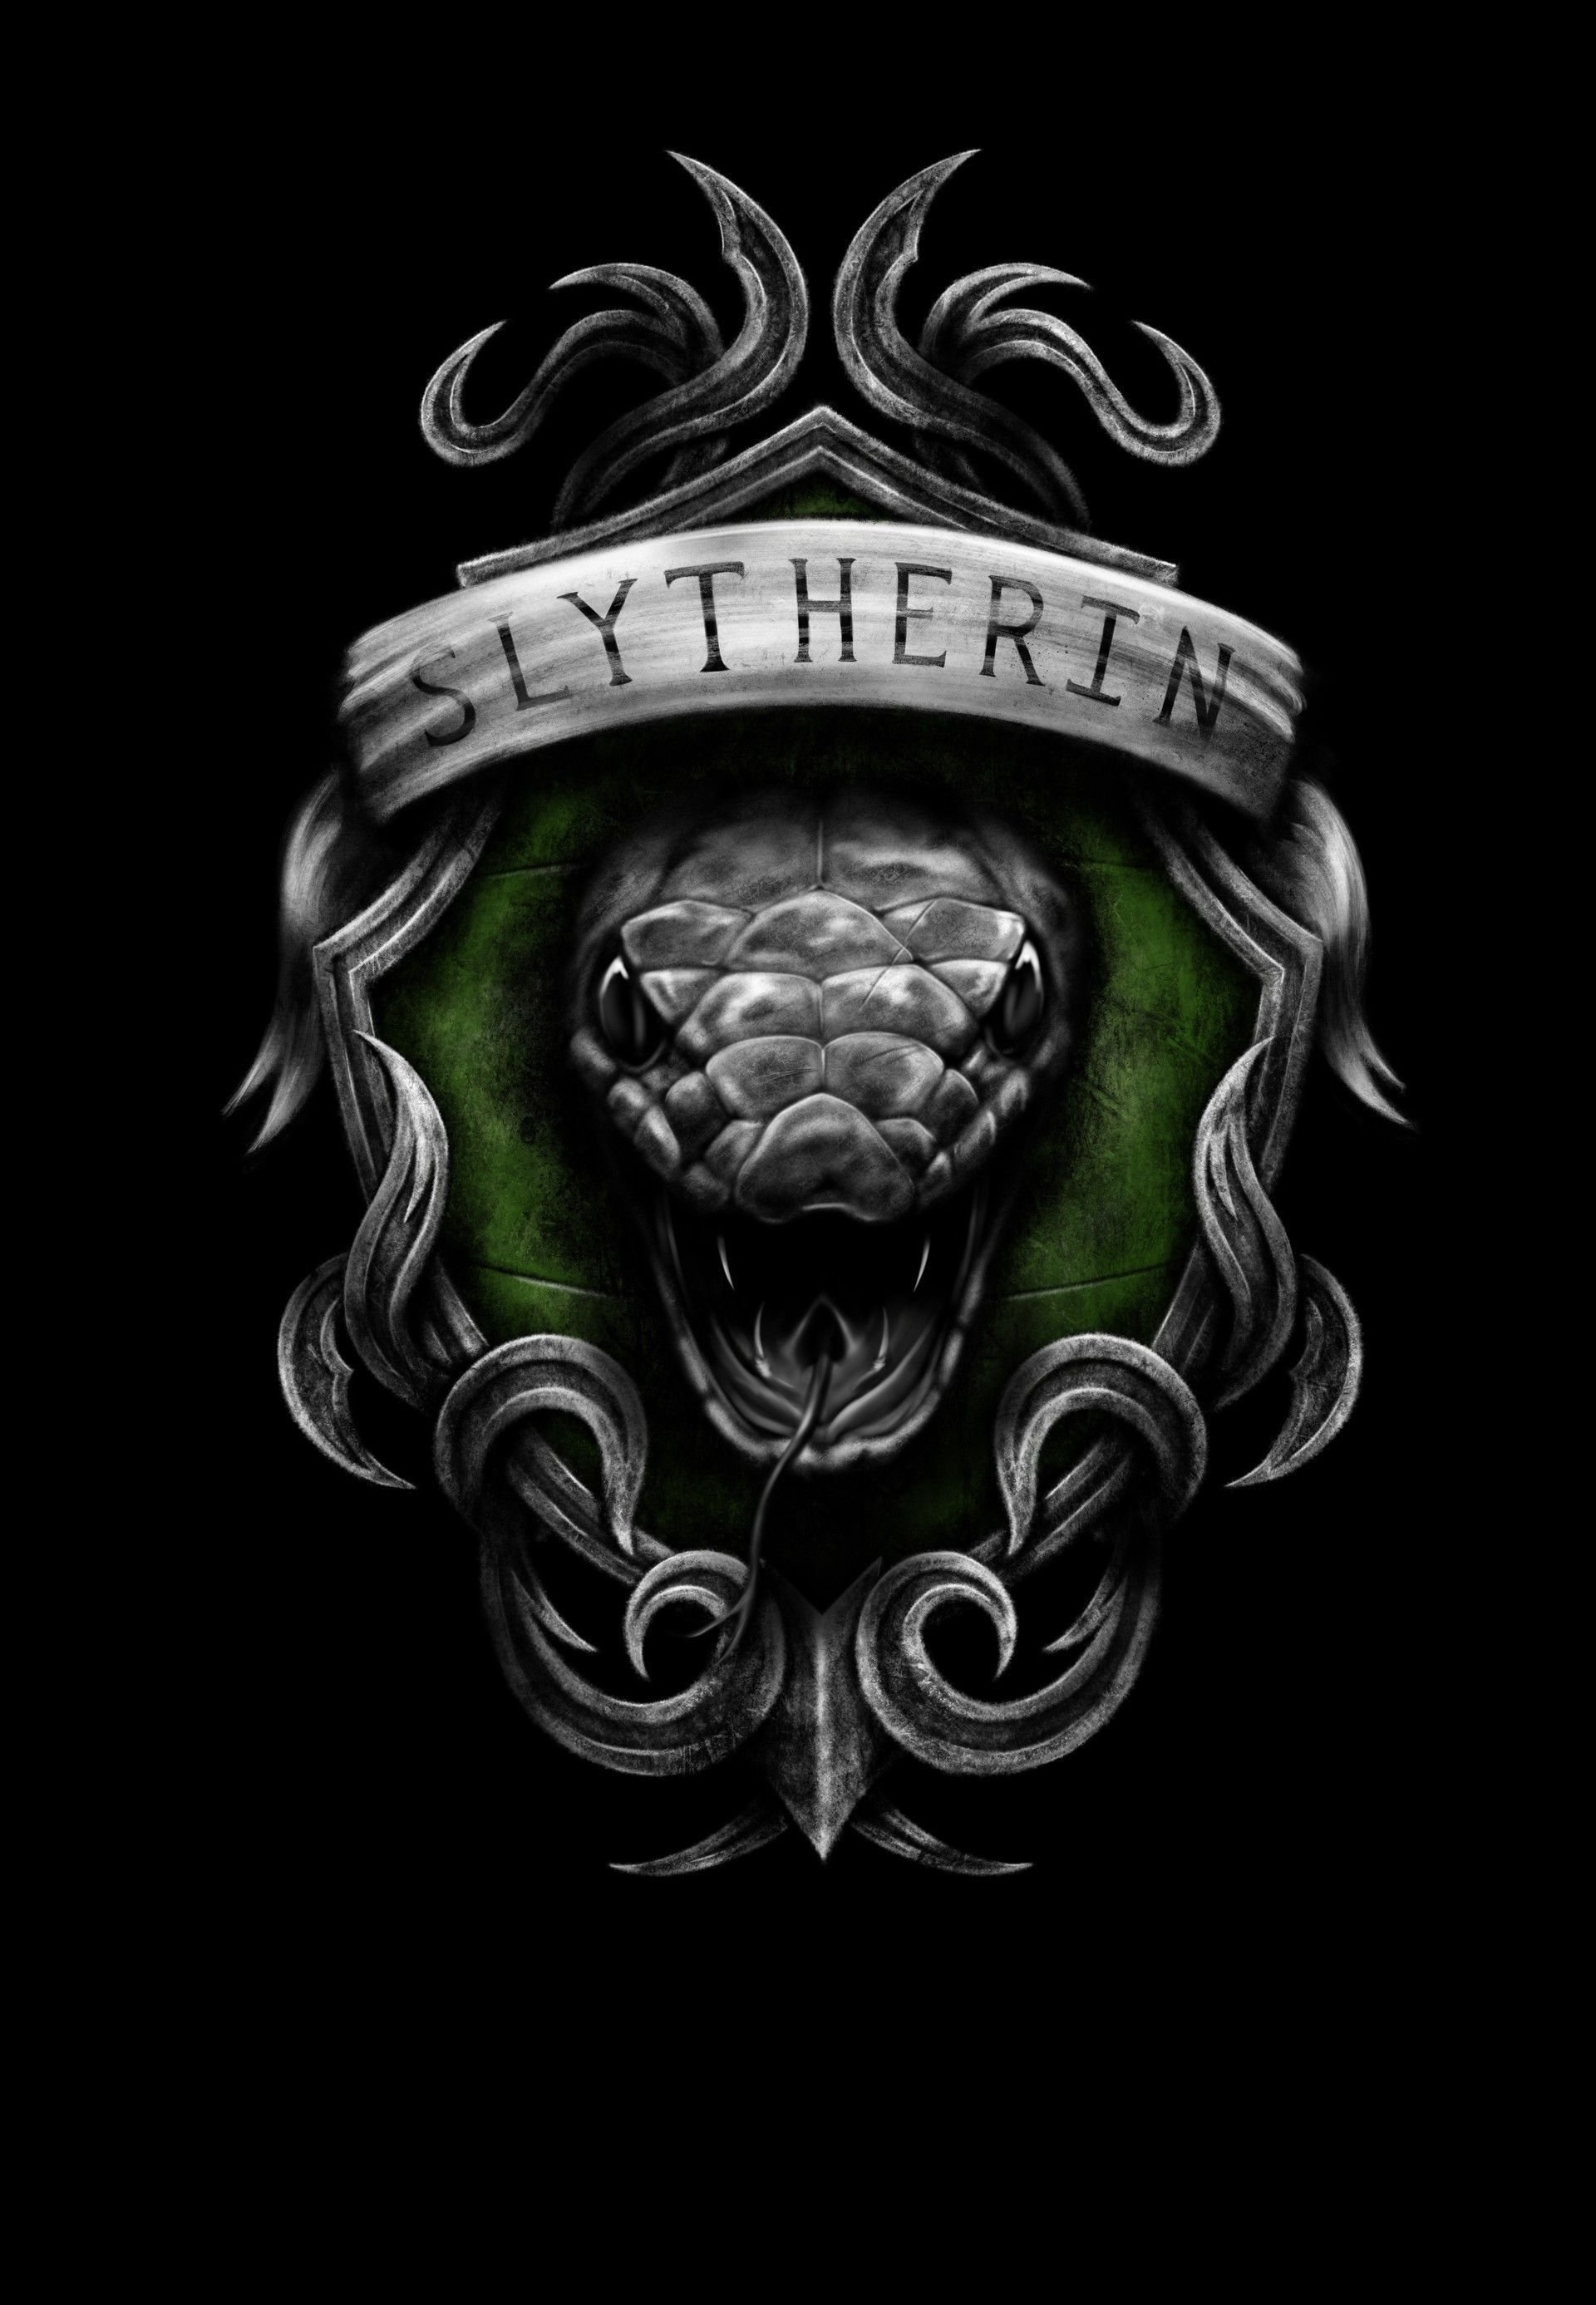 Slytherin Phone Wallpapers Top Free Slytherin Phone Backgrounds Wallpaperaccess